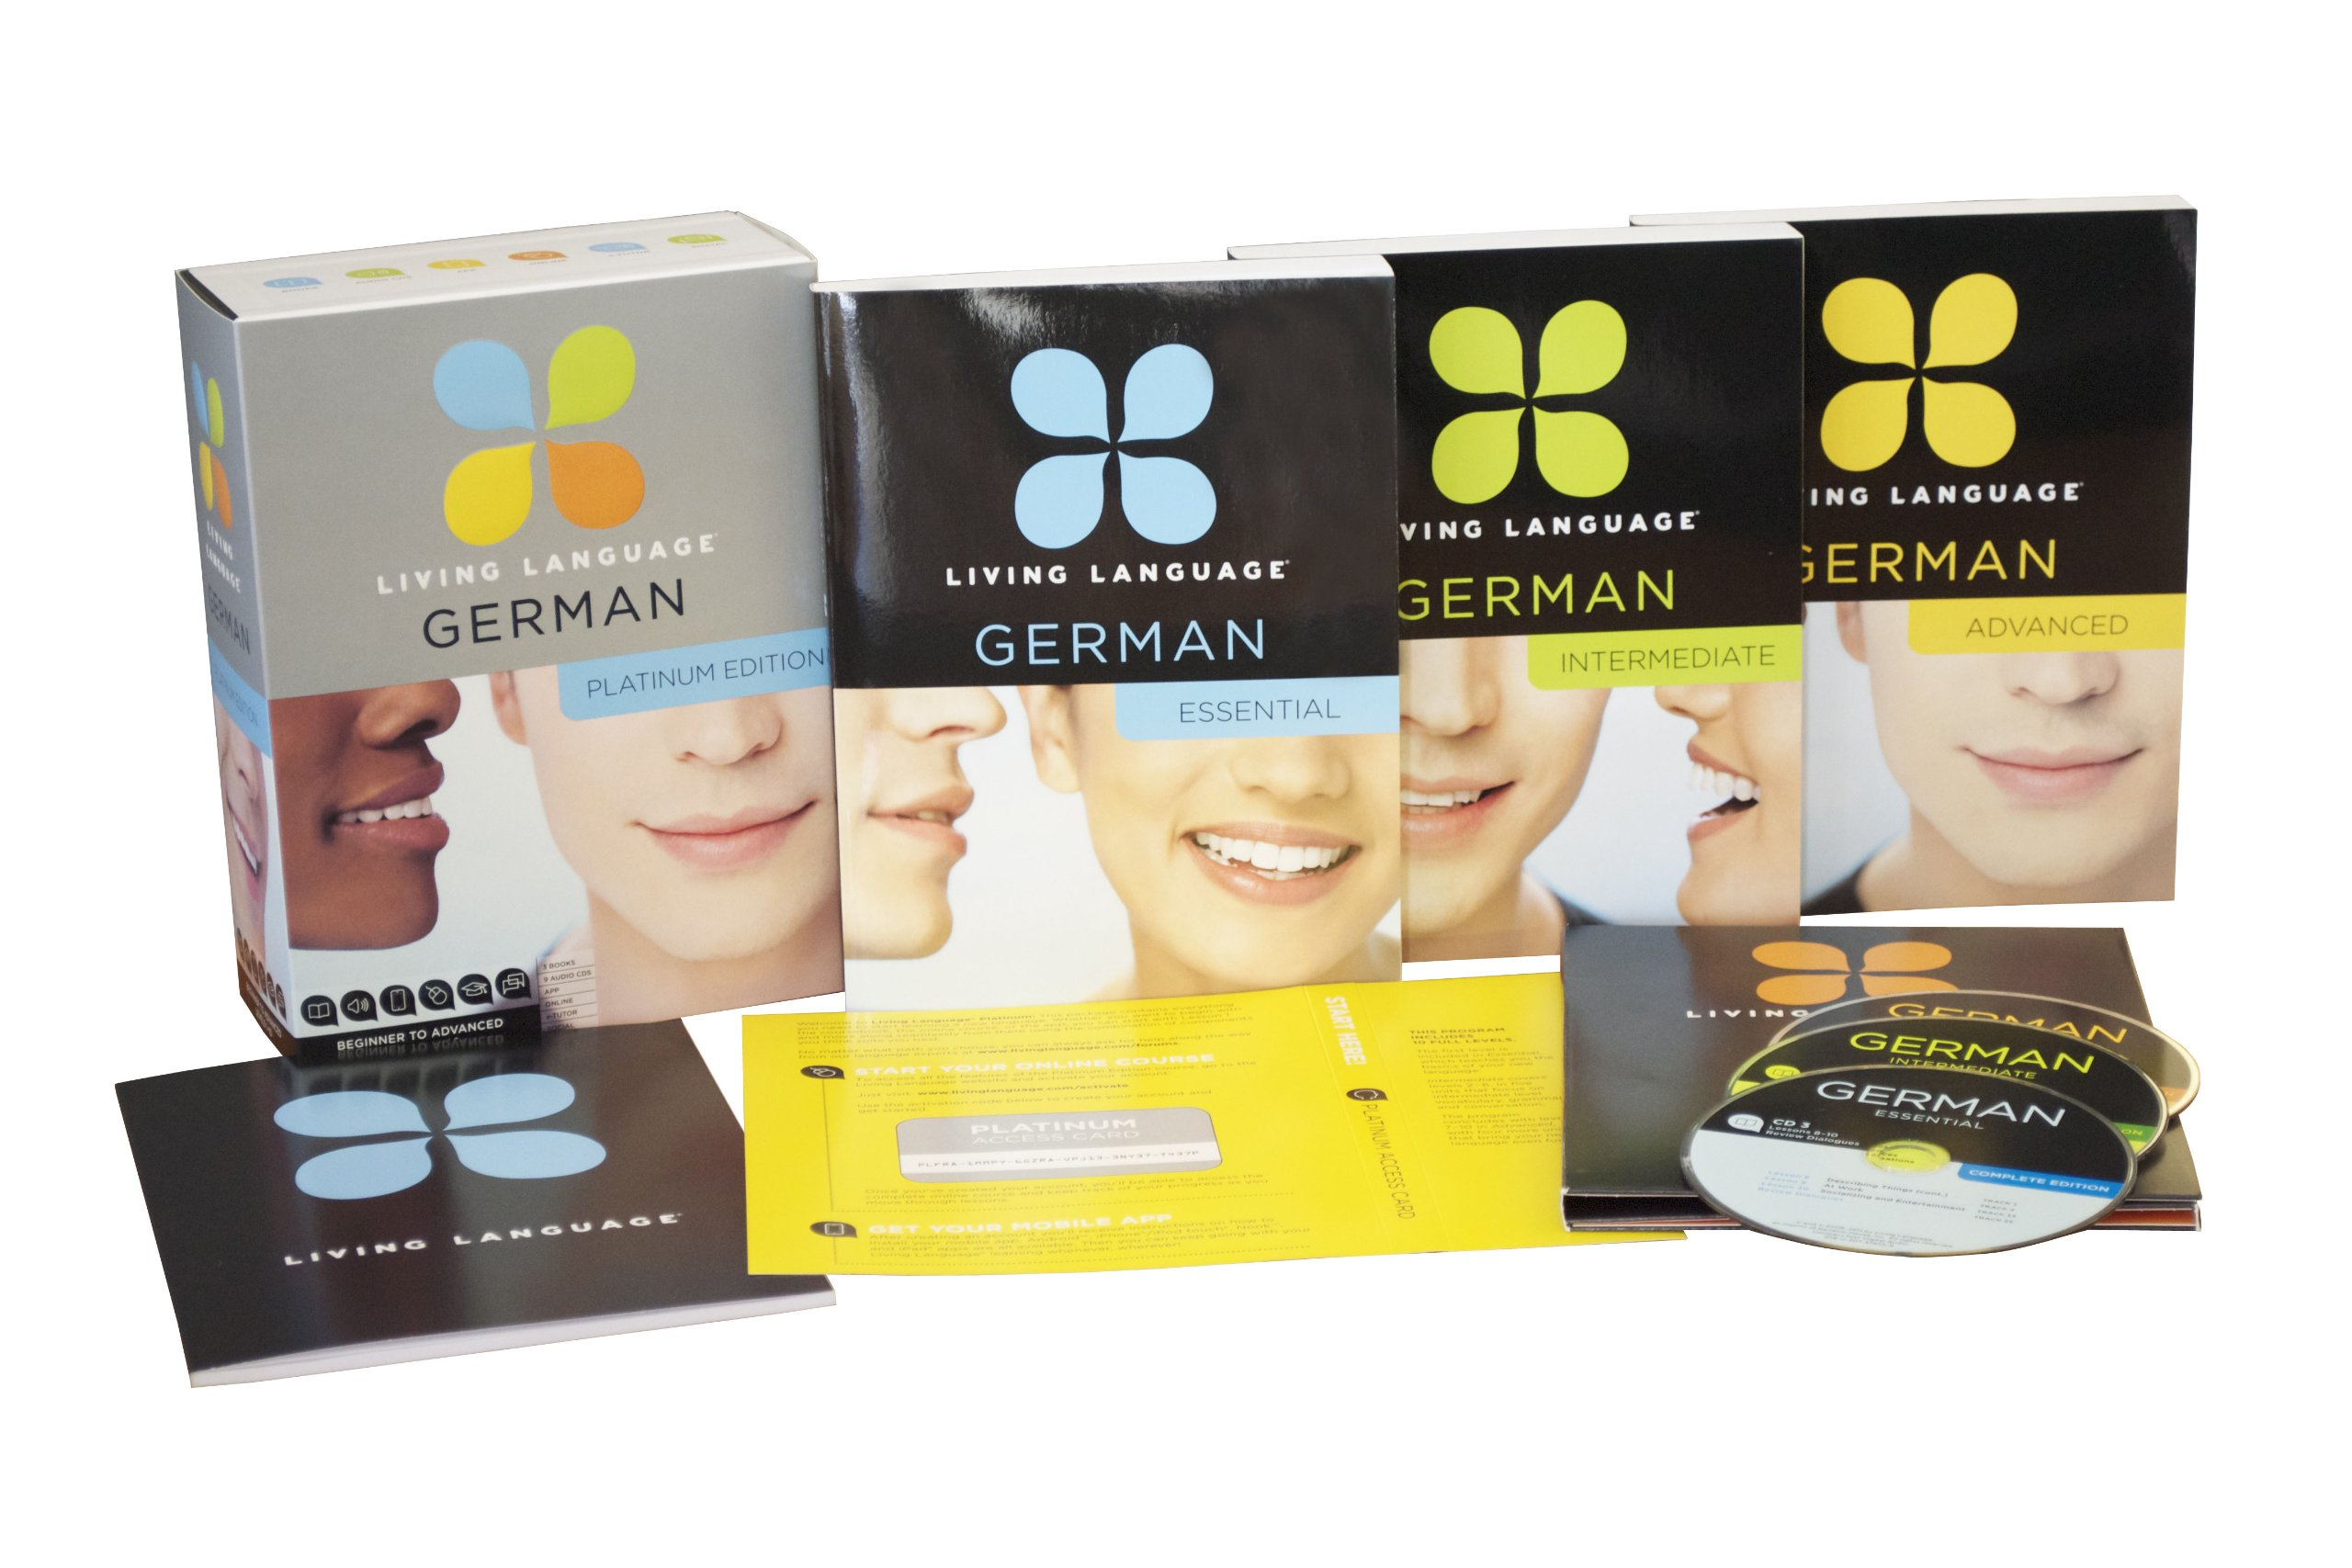 Living Language German, Platinum Edition: A complete beginner through advanced course, including 3 coursebooks, 9 audio CDs, complete online course, apps, and live e-Tutoring by Living Language